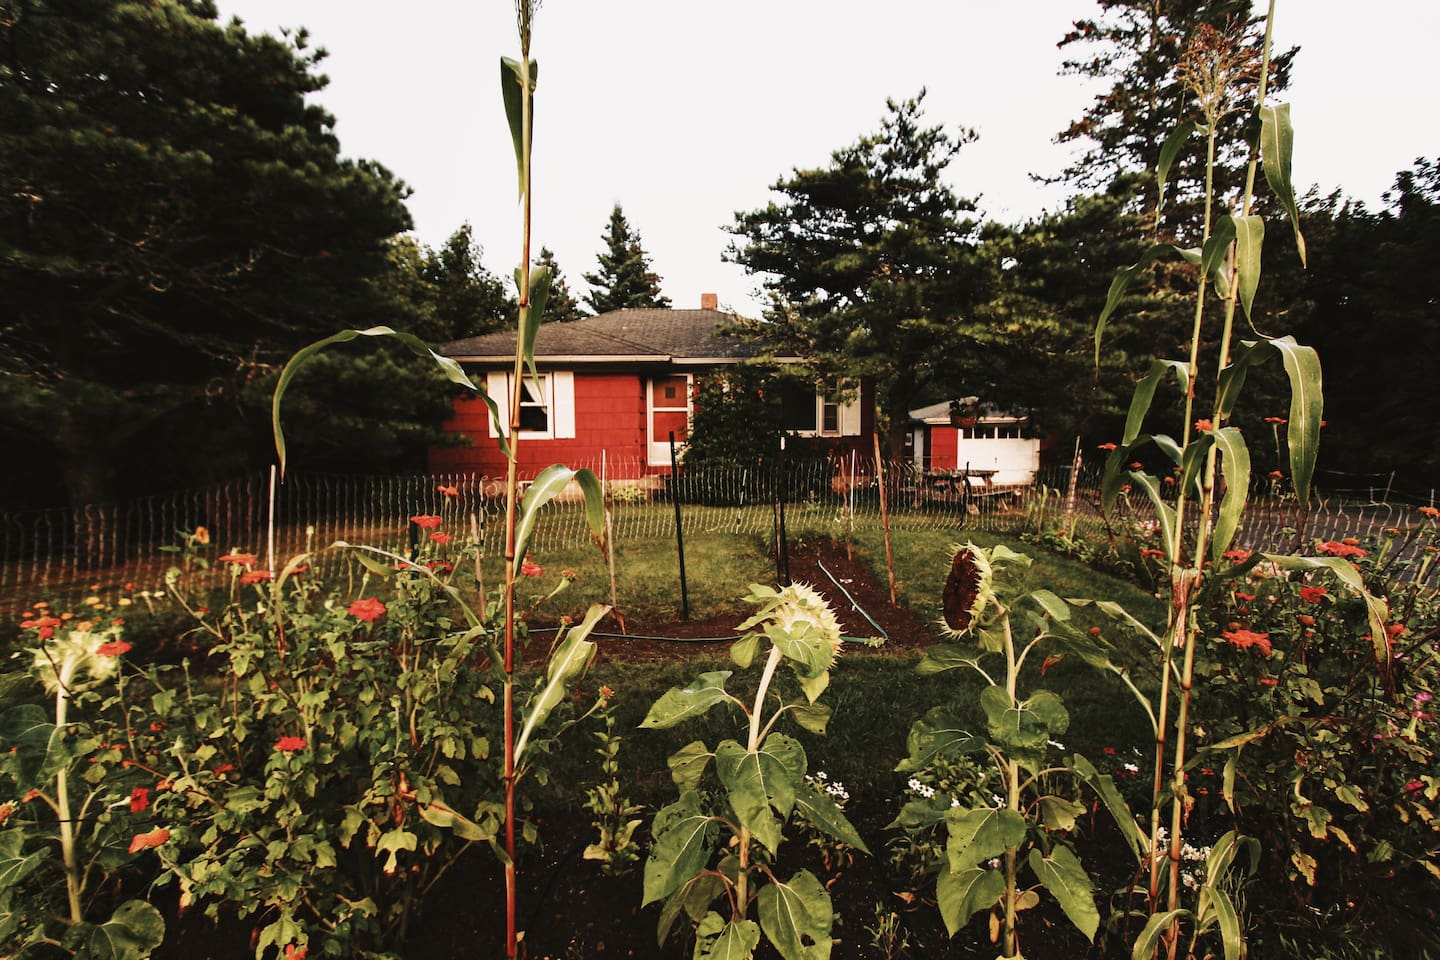 Thelma\'s Garden Cottage - Houses for Rent in Mount Desert, Maine ...